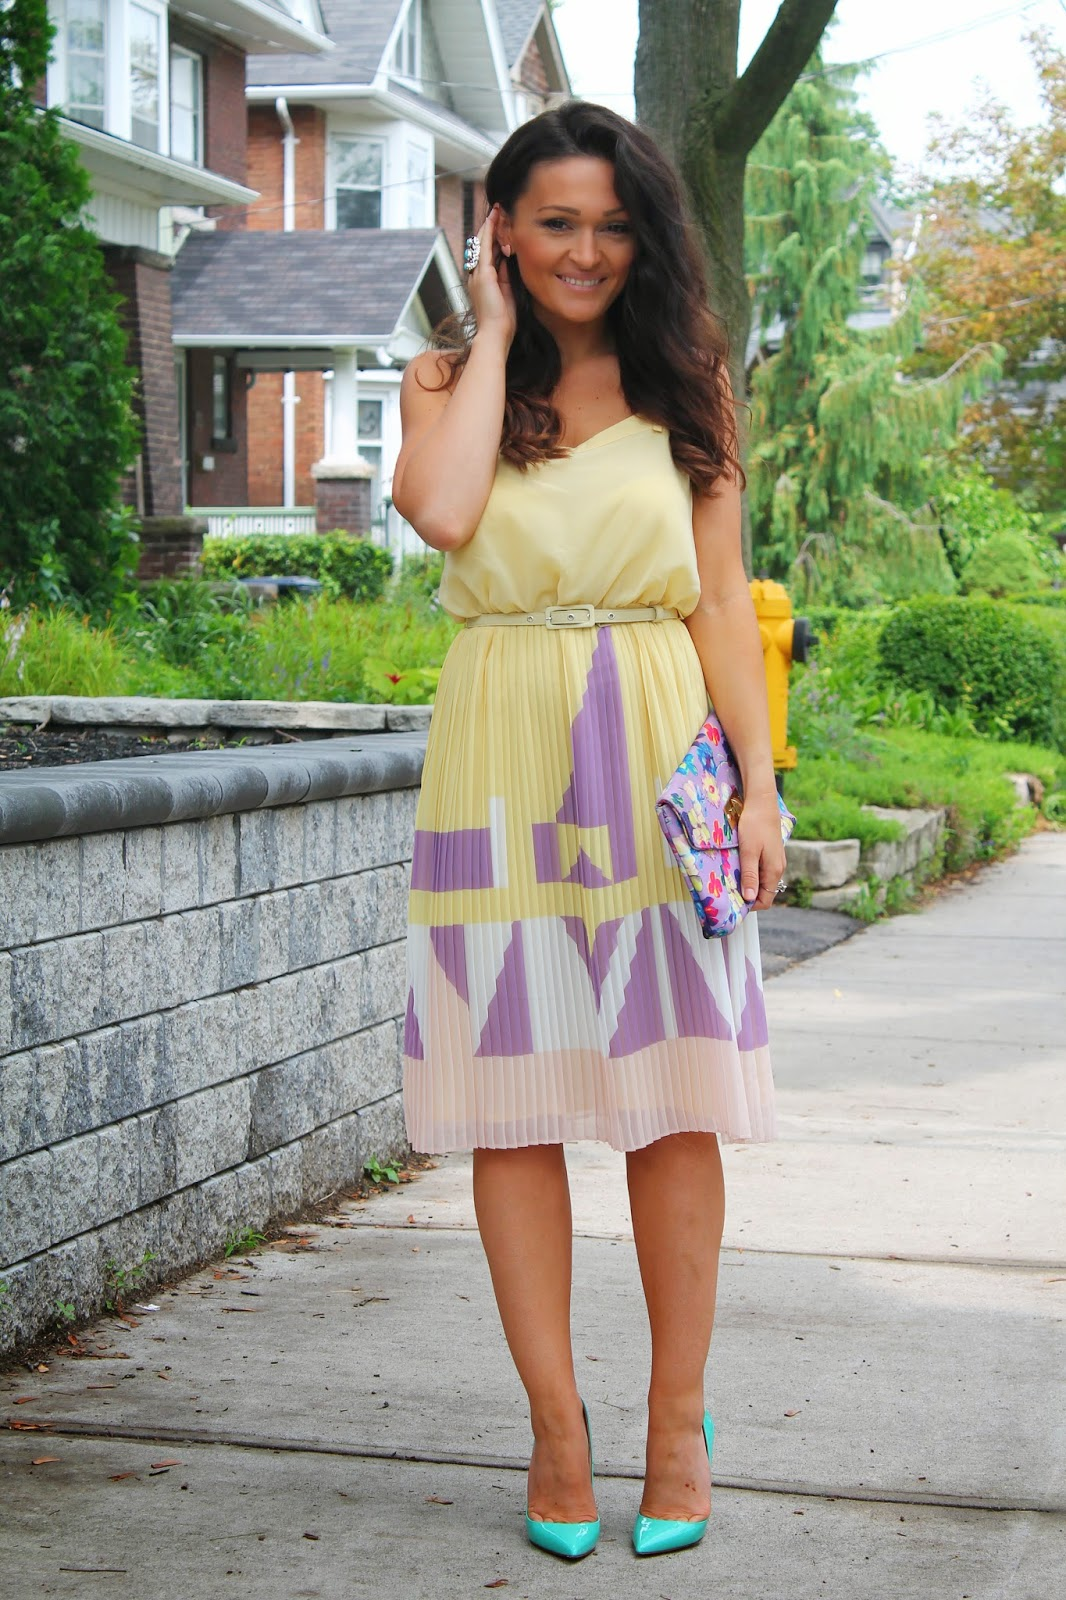 Feminine summer dress, feminine pastel dress, feminine yellow dress, pleated dress, summer outfit, blogerke, canadian fashion blogger, toronto street style